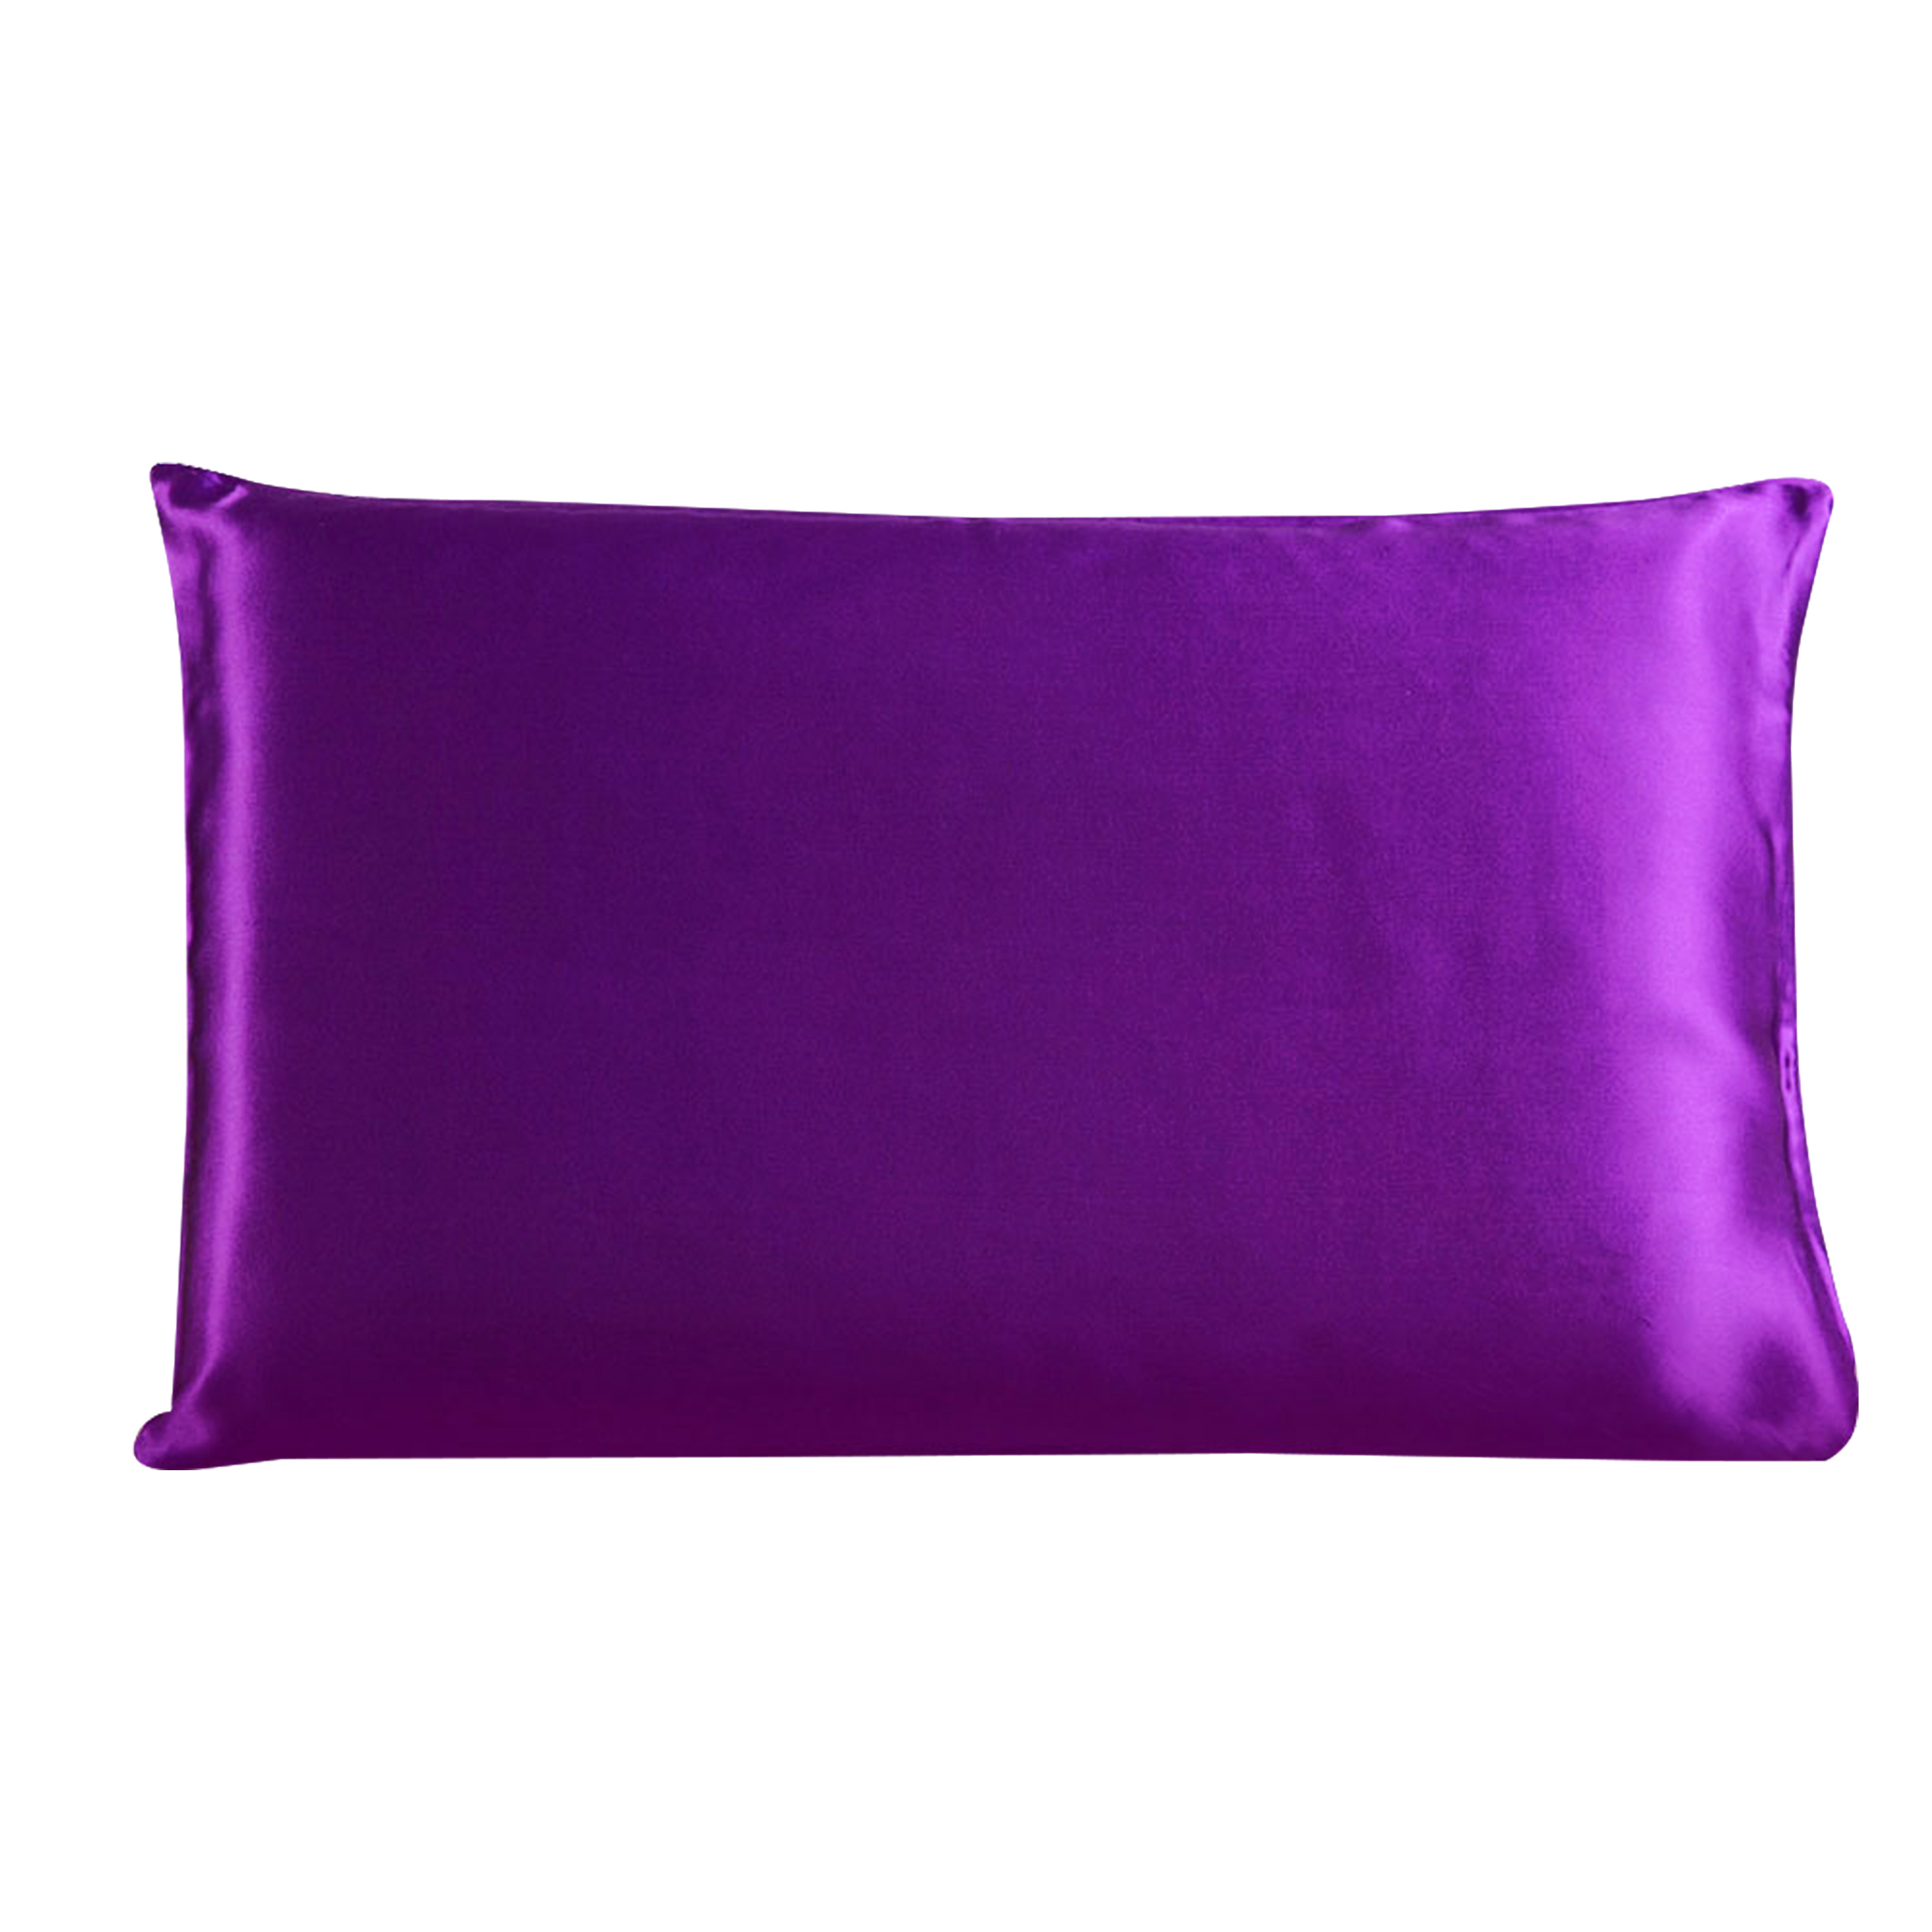 100% Mulberry Silk Fabric Pillow Case Cover Pillowcase Purple Standard Size